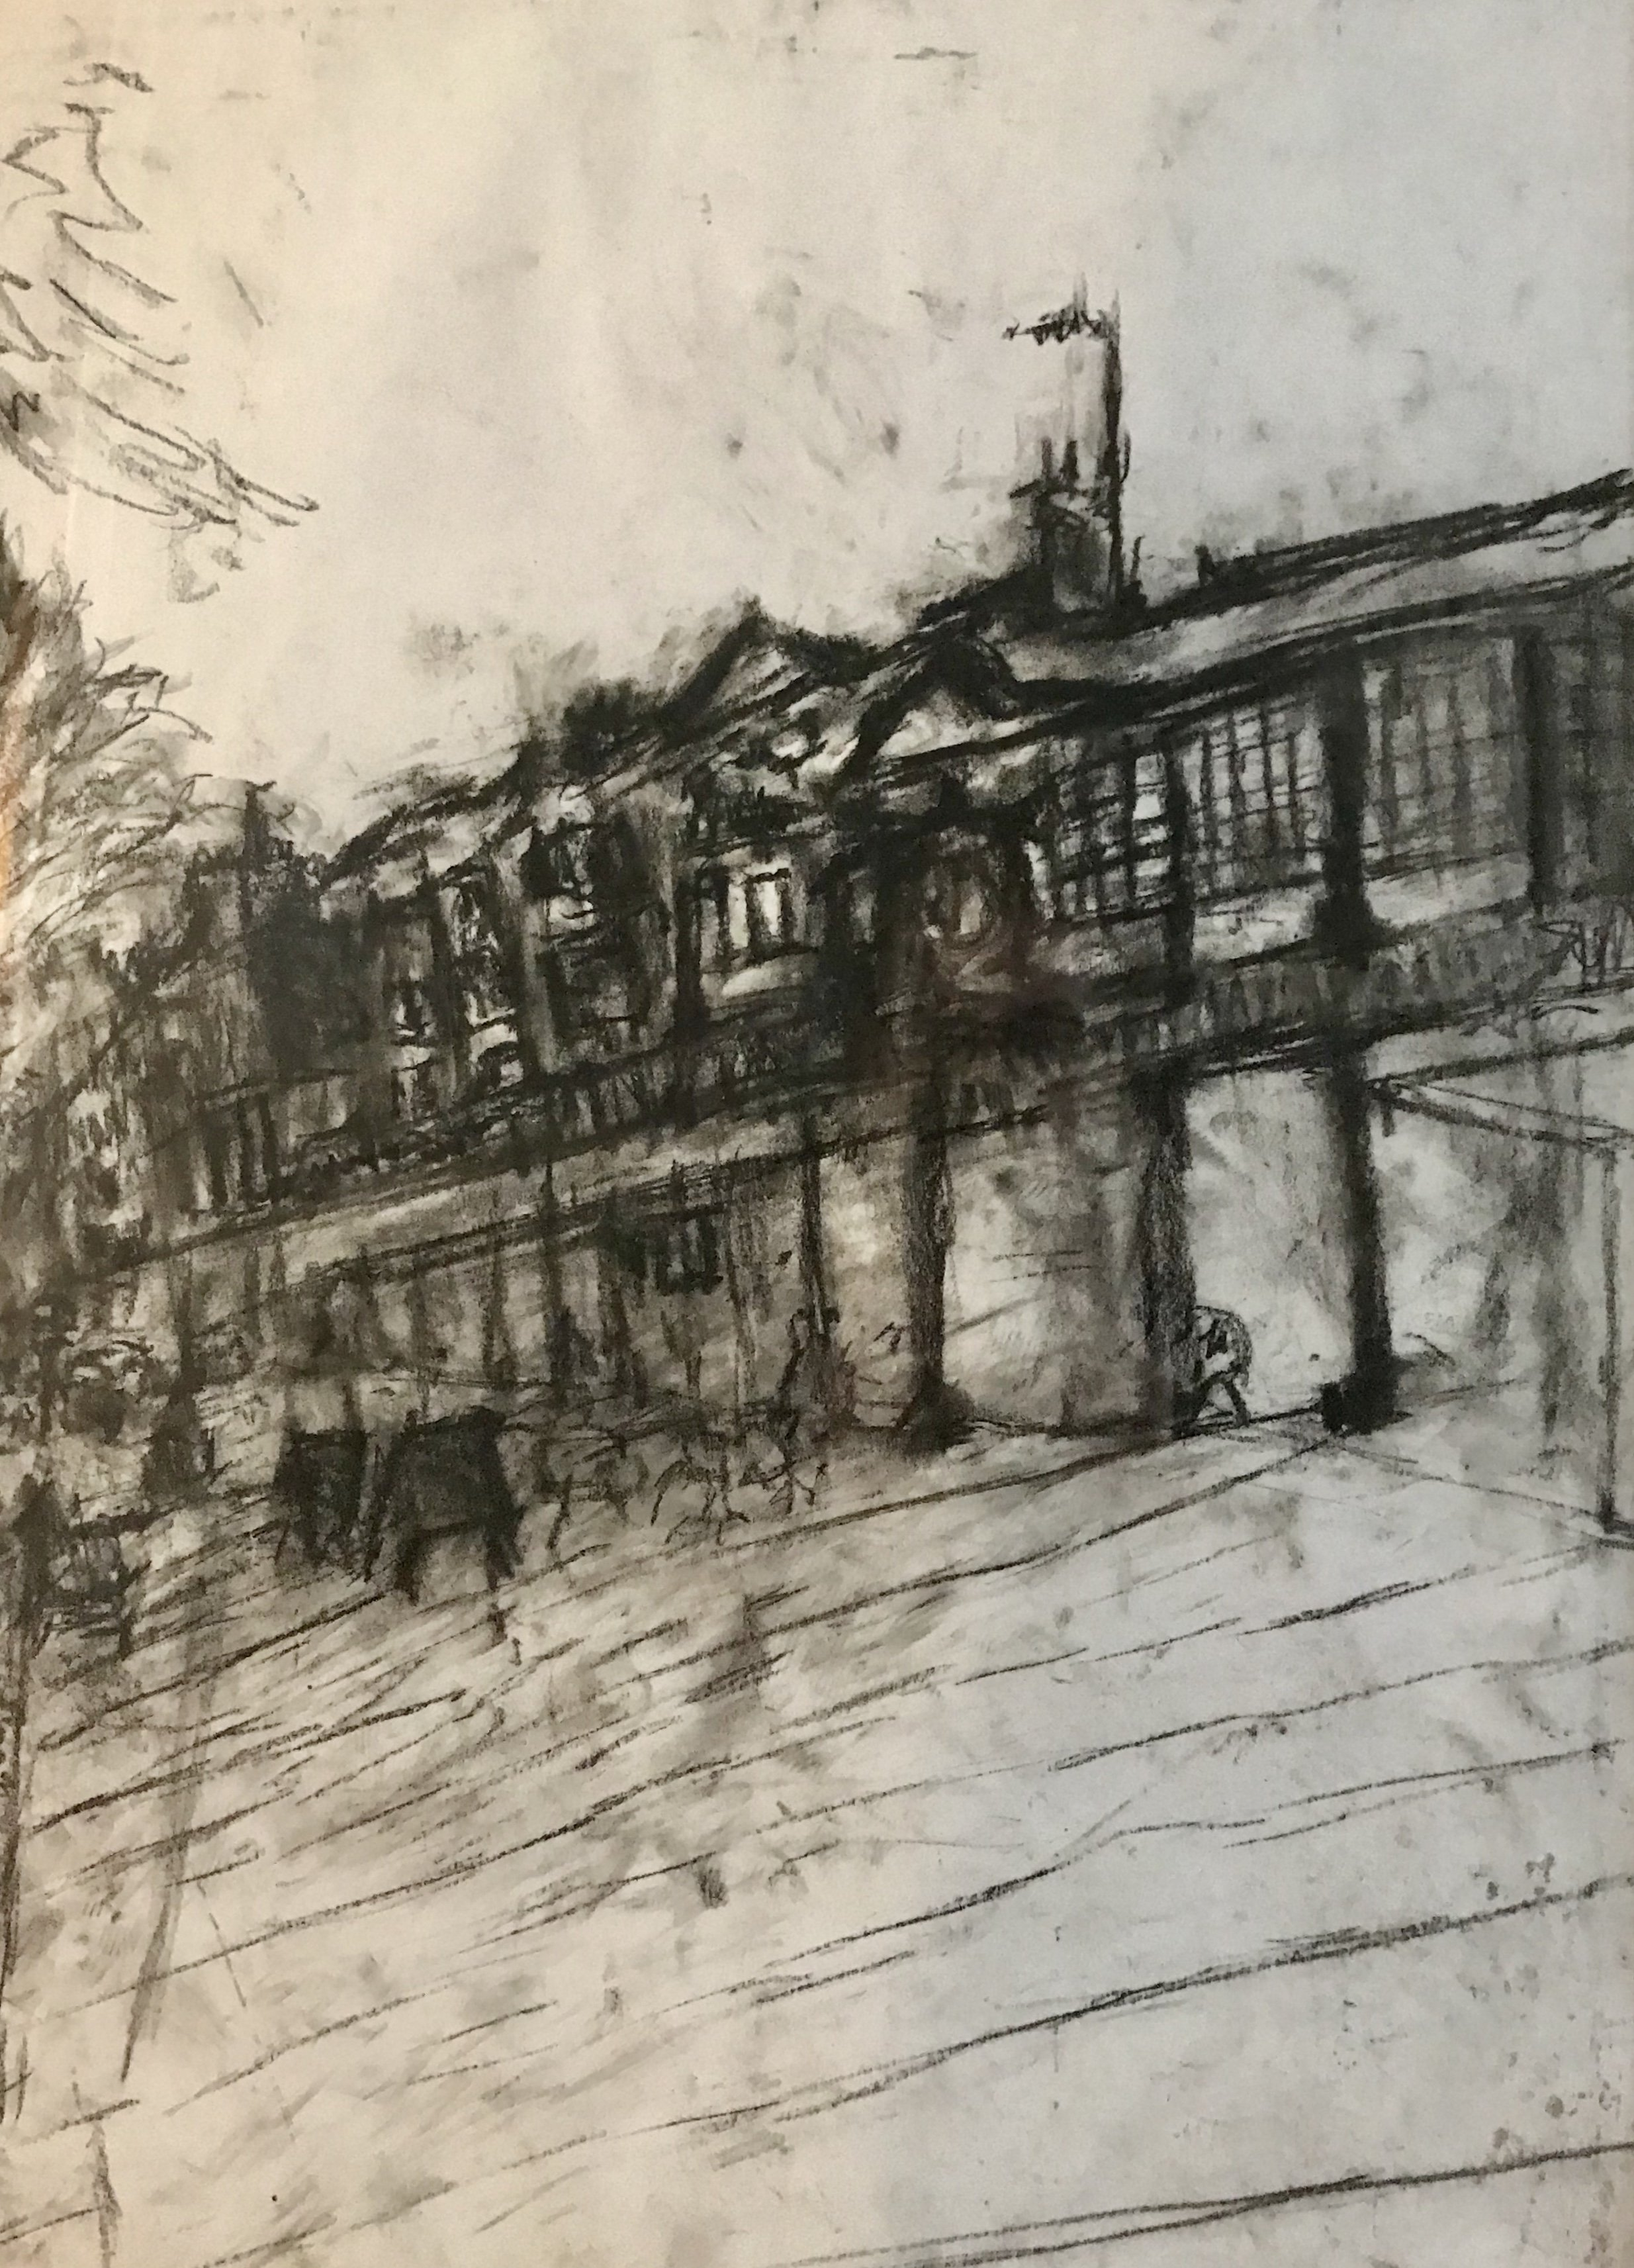 9. The Pantiles, conte crayon on paper, 56x72 cm (framed)